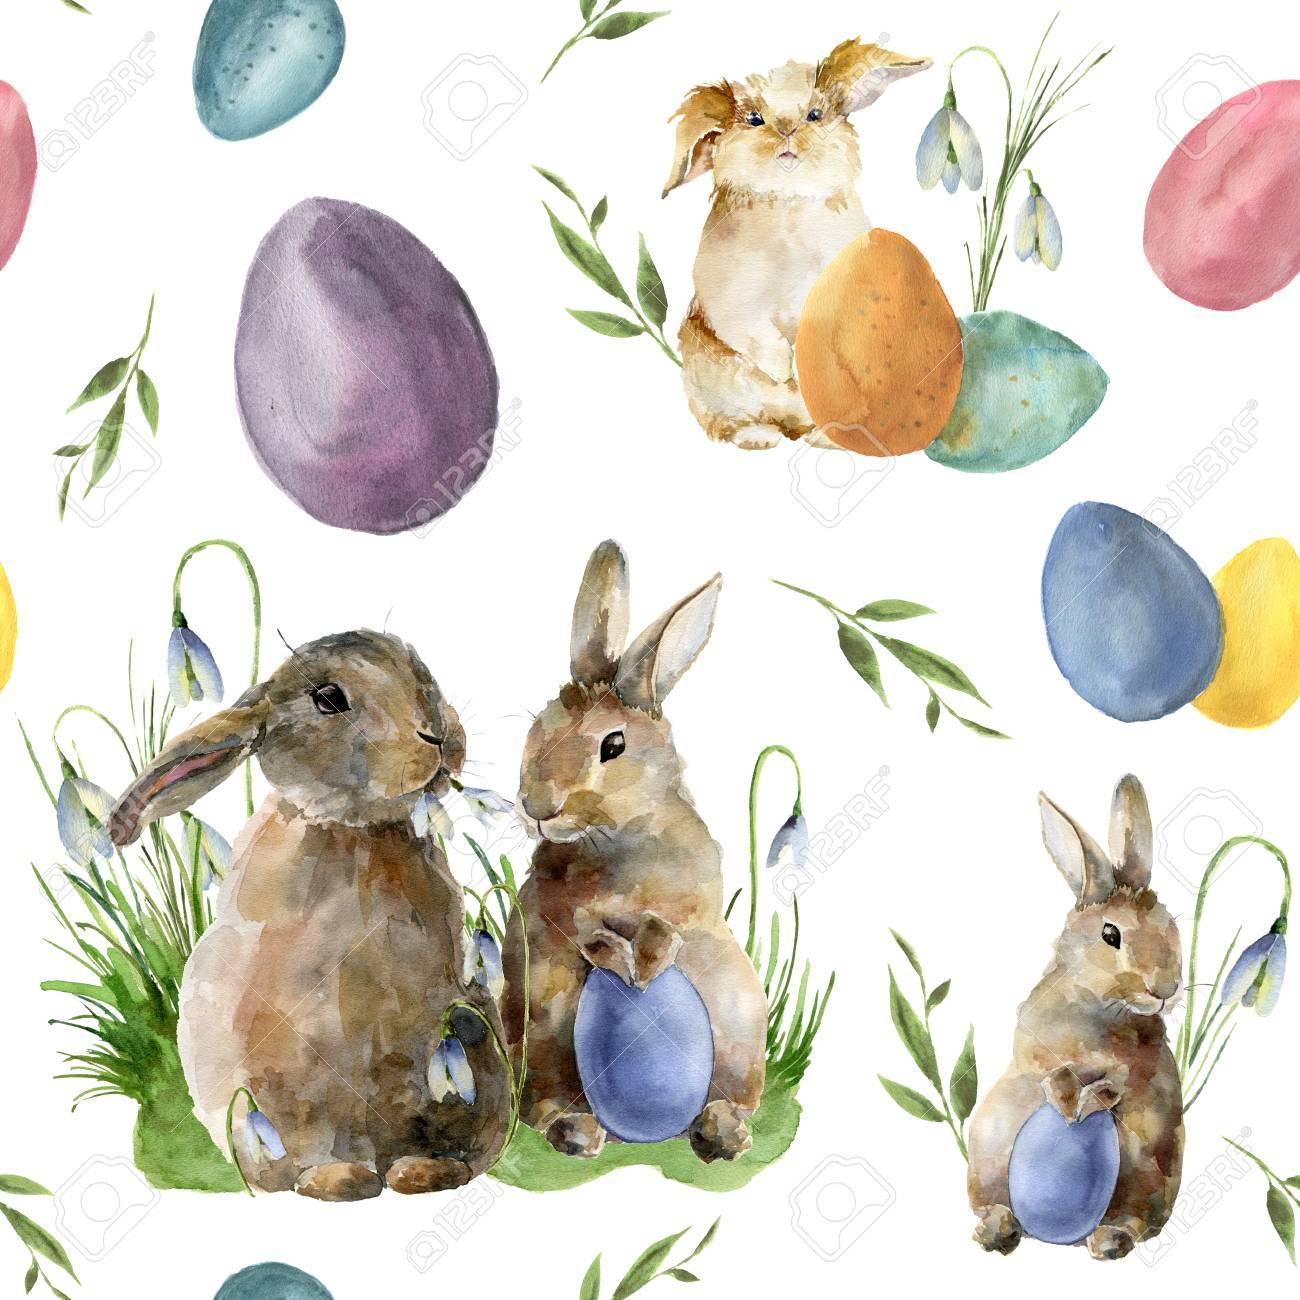 Watercolor easter pattern with rabbit and egg. Holiday ornament with bunny, colored eggs and snowdrops isolated on white background. Nature illustration for design or fabric. - 73394065